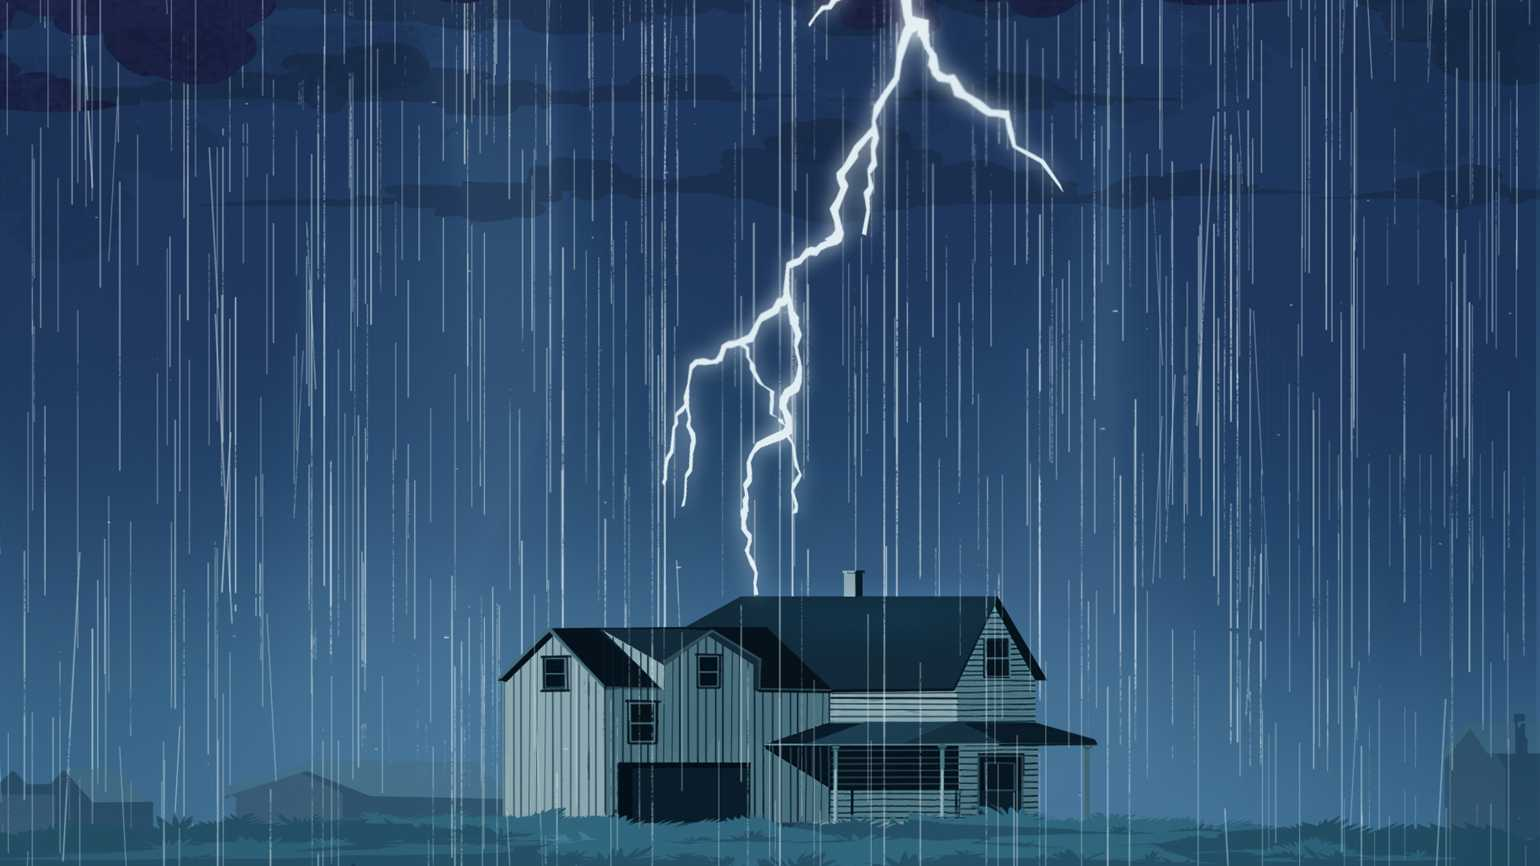 A mysterious voice in a frightening thunderstorm wreaked havoc on her homee.